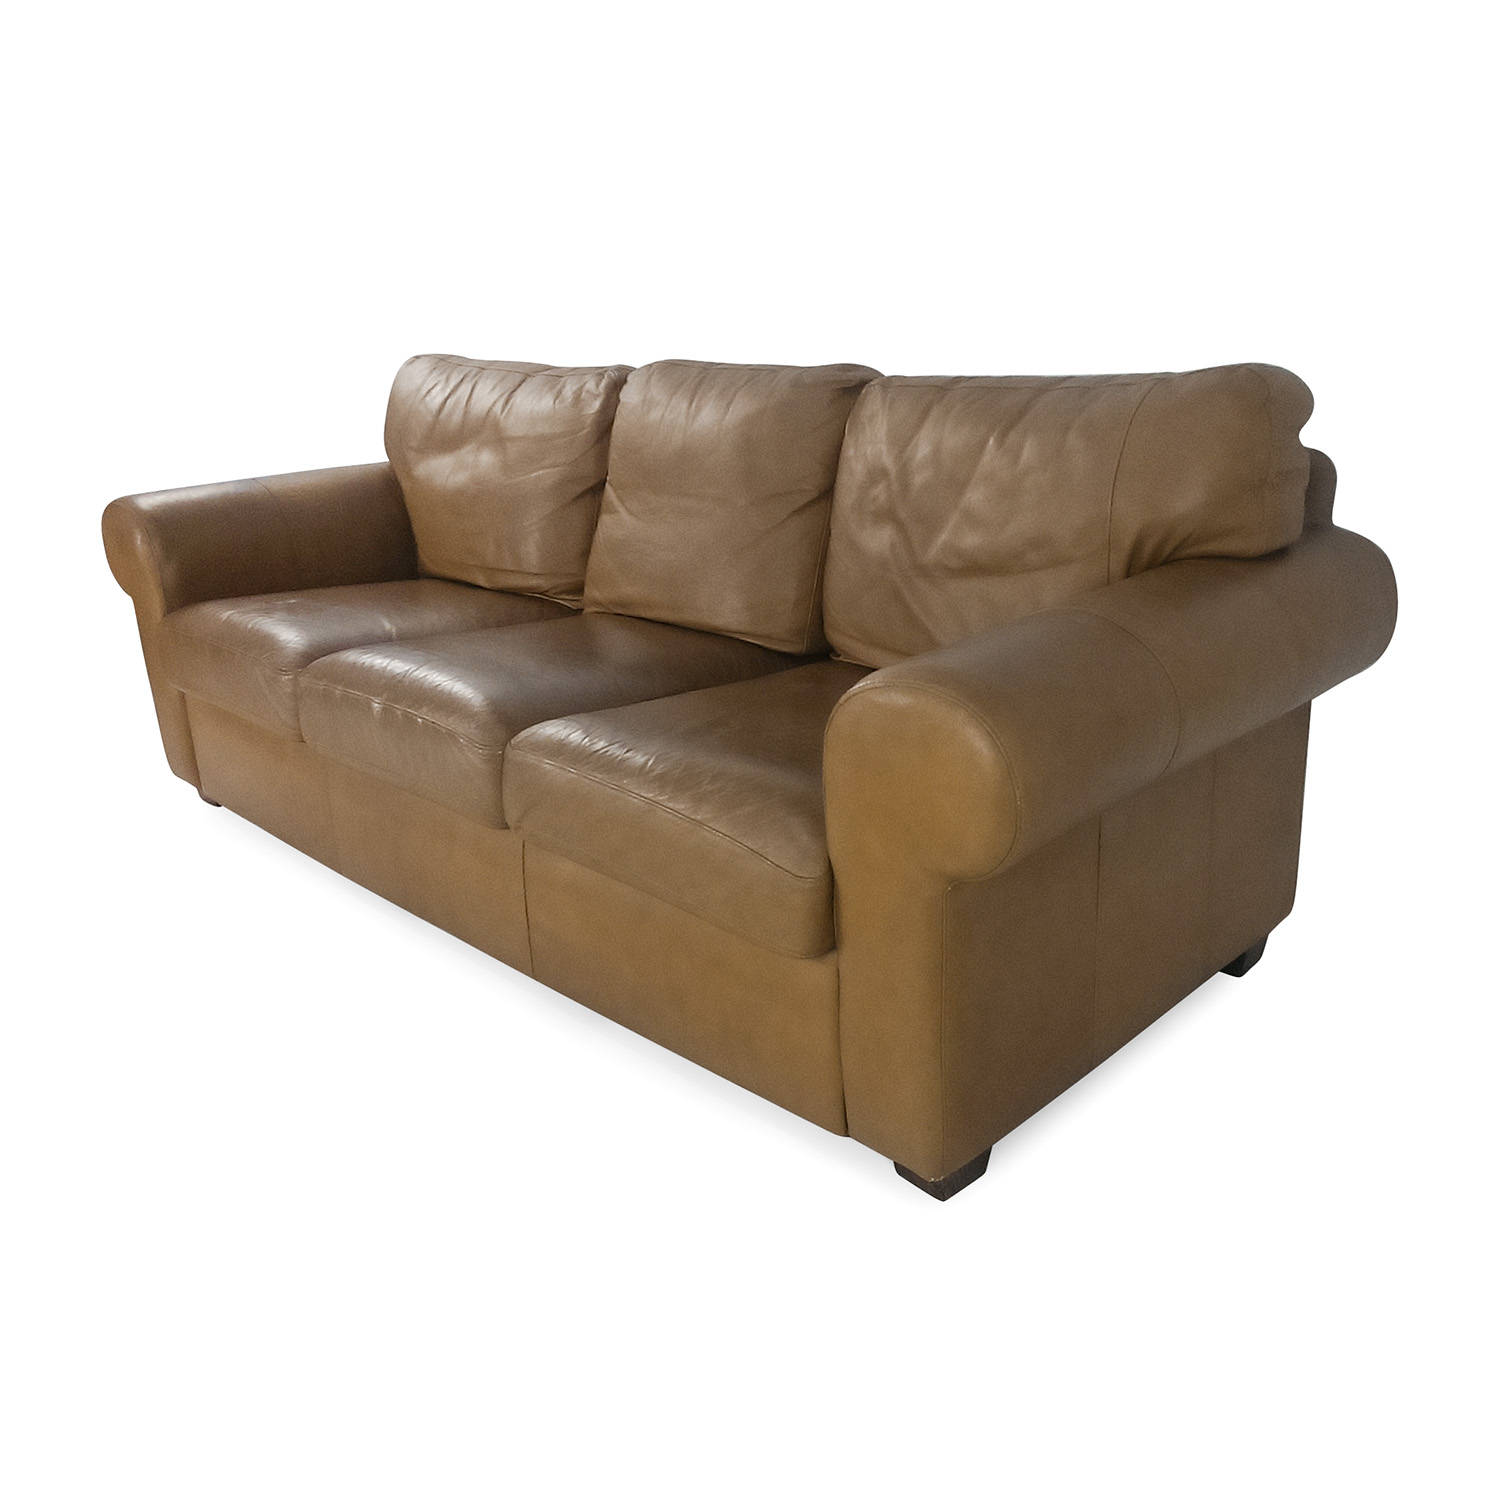 crate and barrel leather sofa bed lazy boy mackenzie 54 off couch